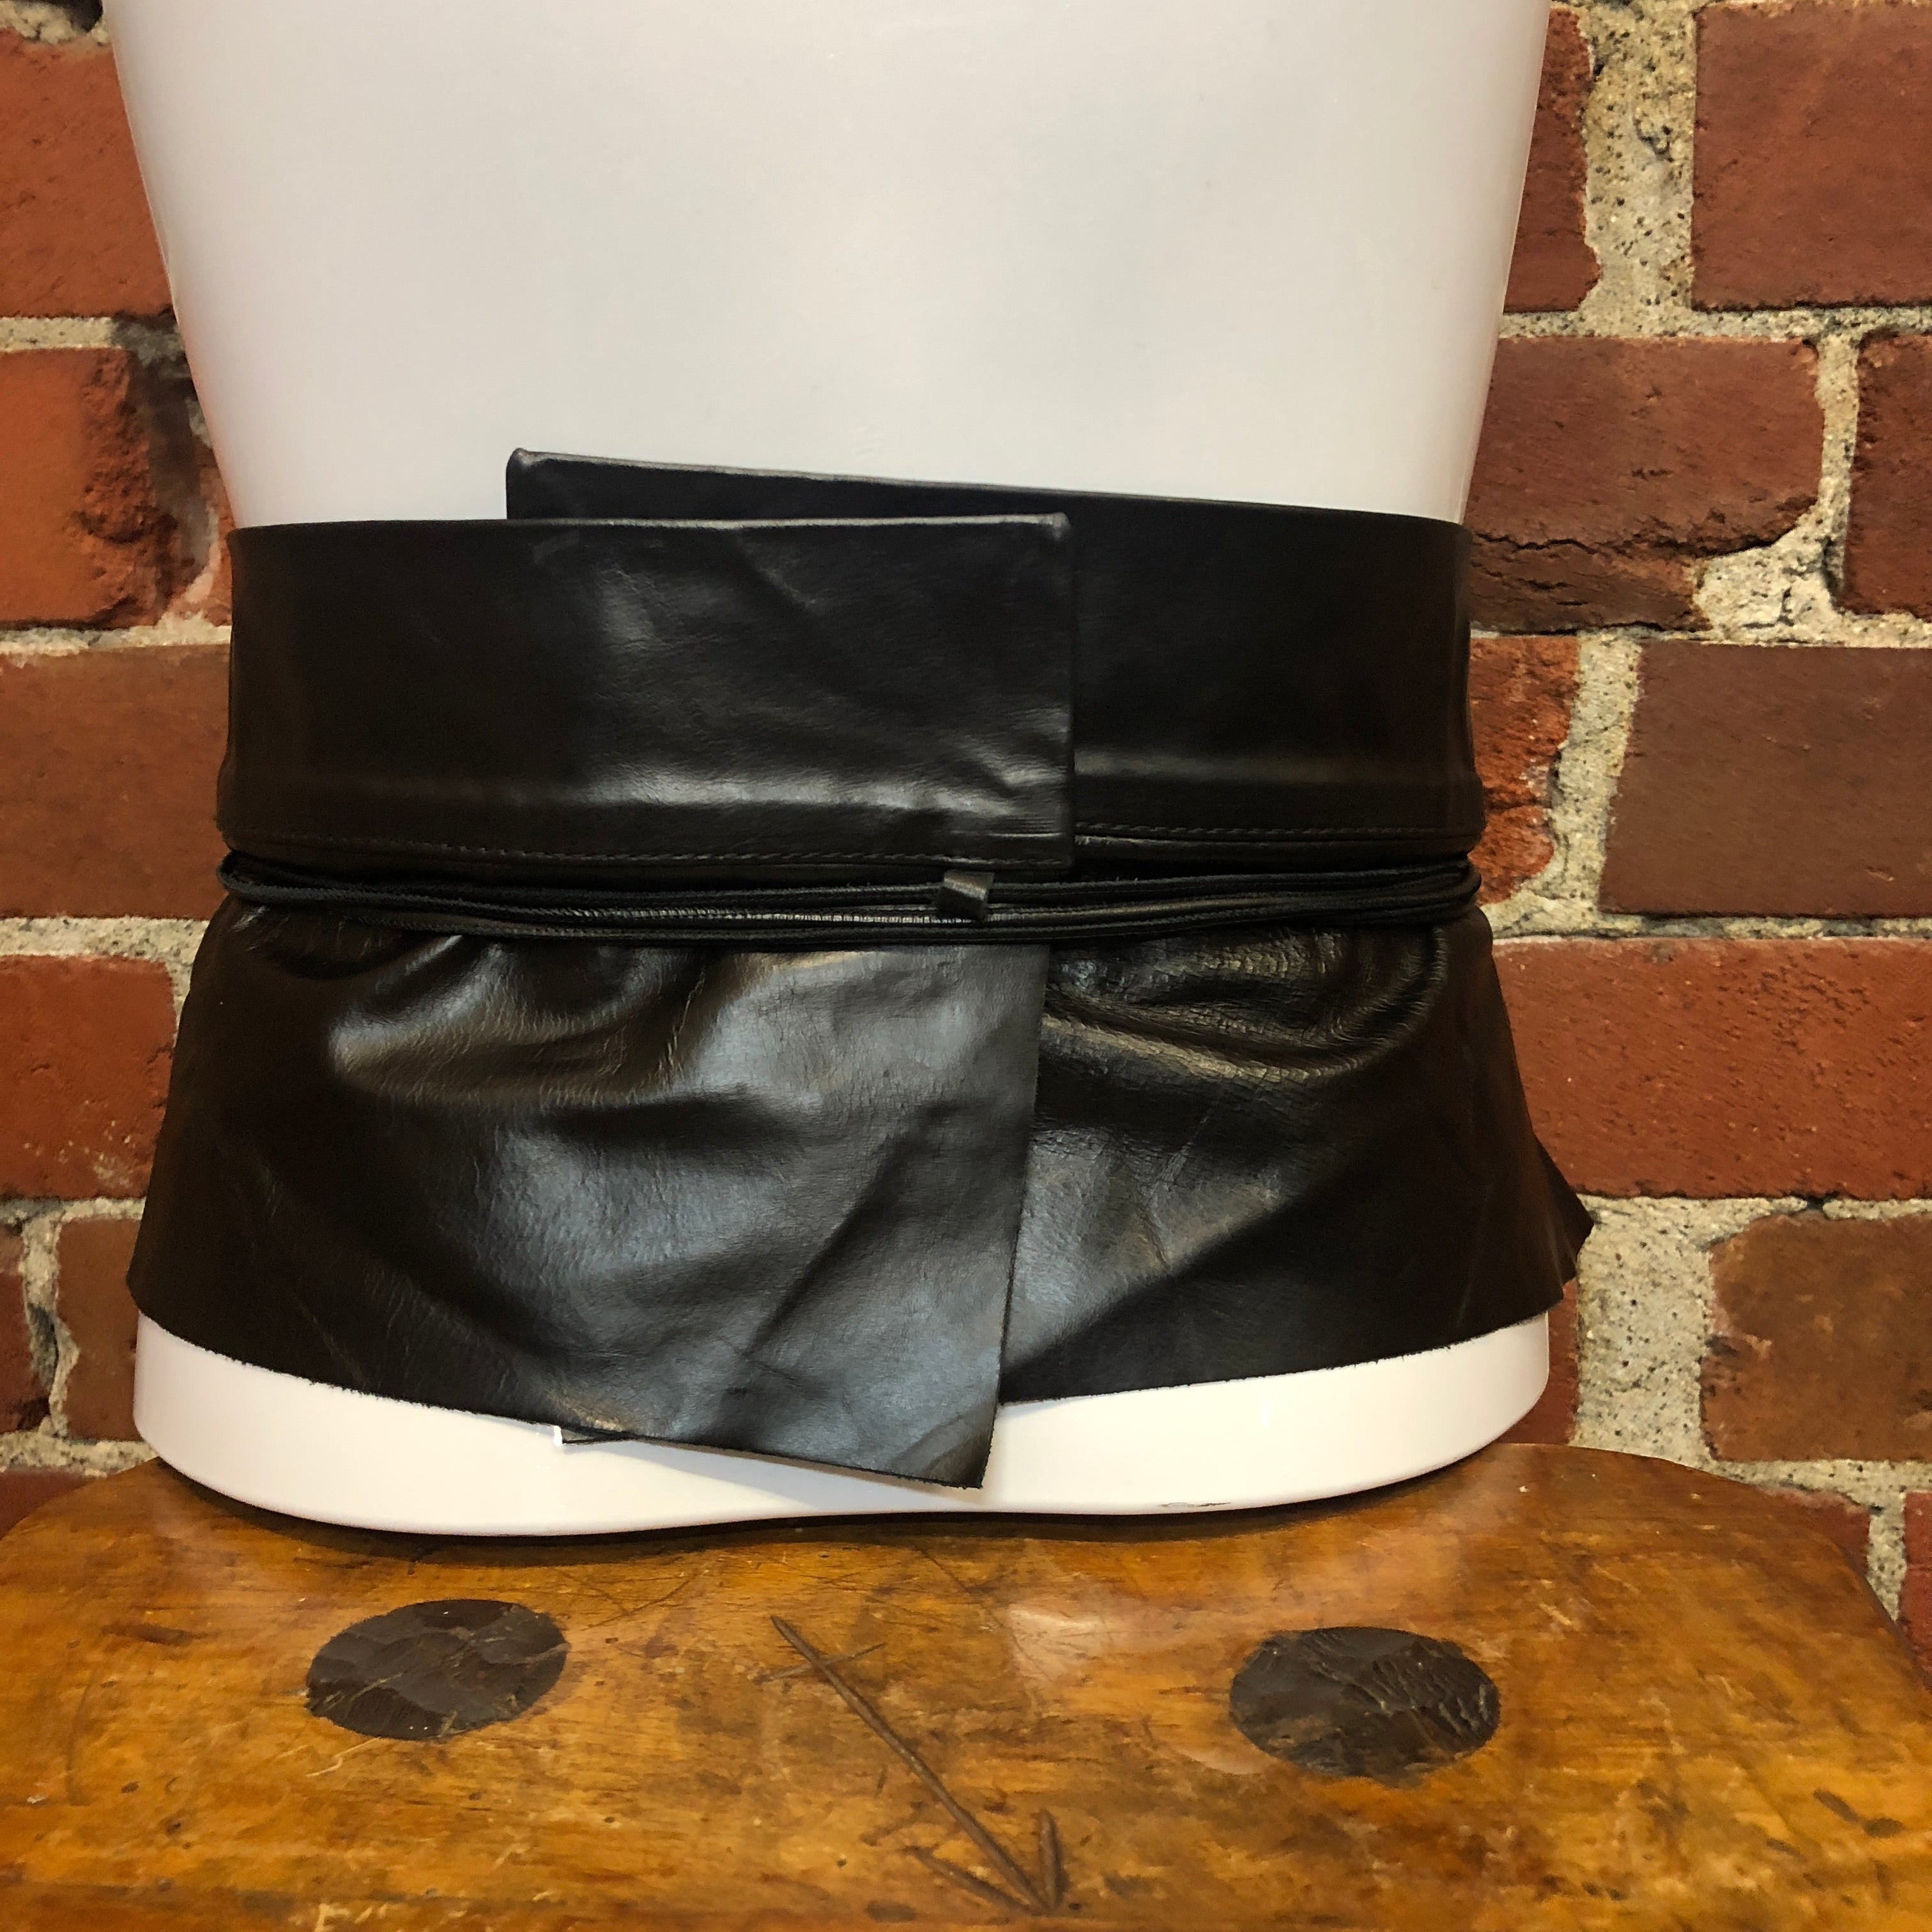 MARGIELA leather OBI belt